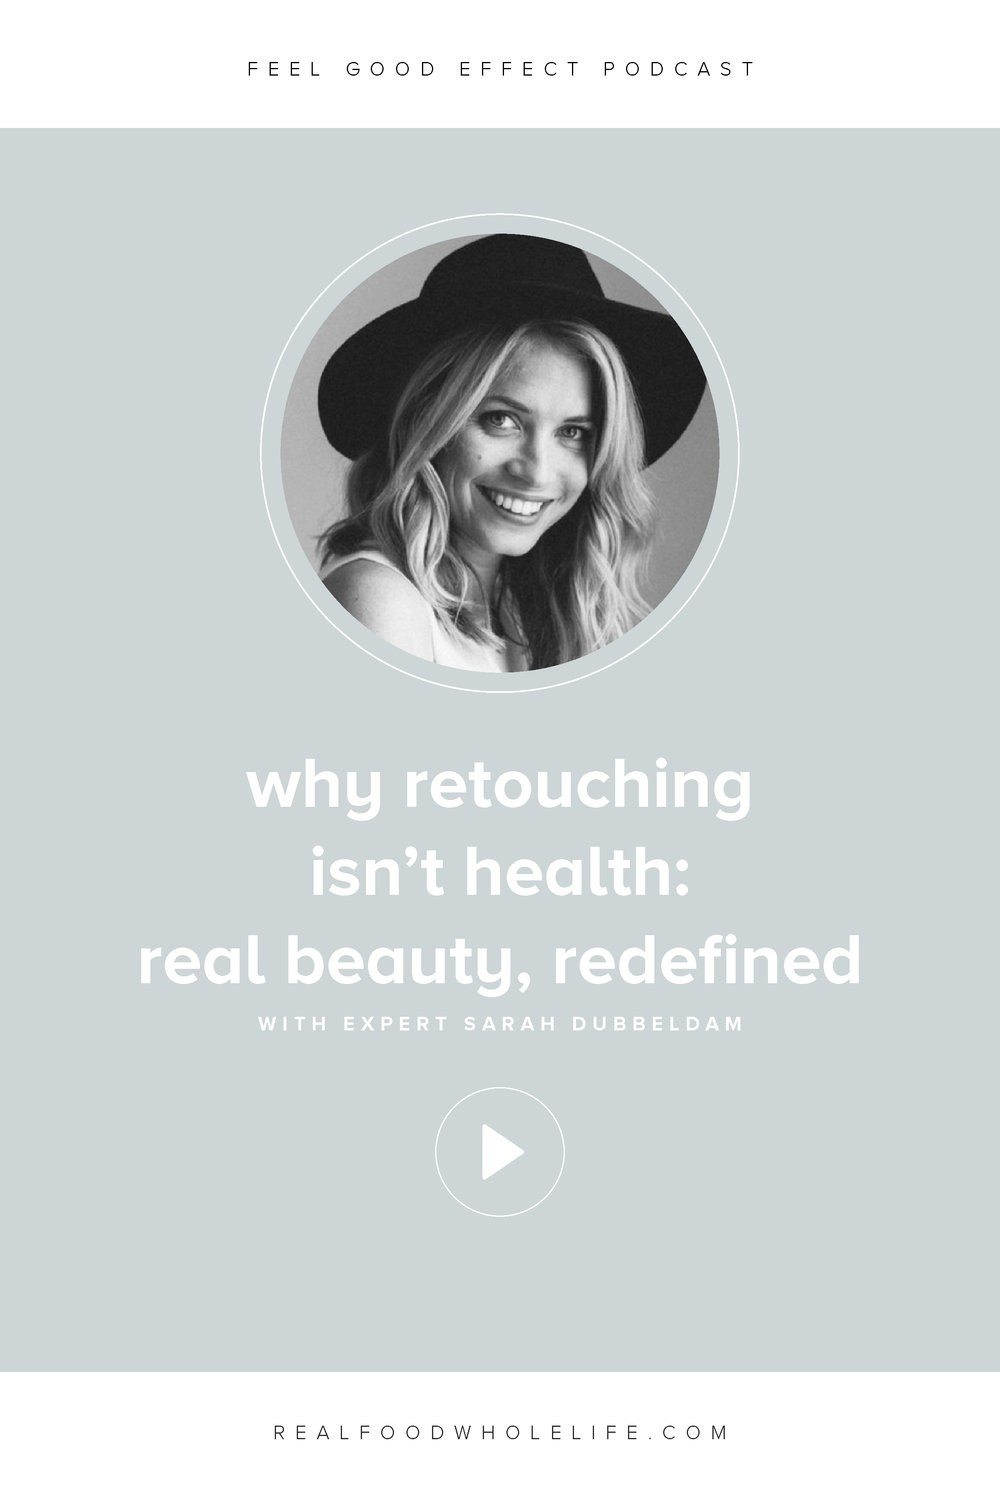 Why Retouching Isn't Healthy with Sarah Dubbeldam: Feel Good Effect podcast